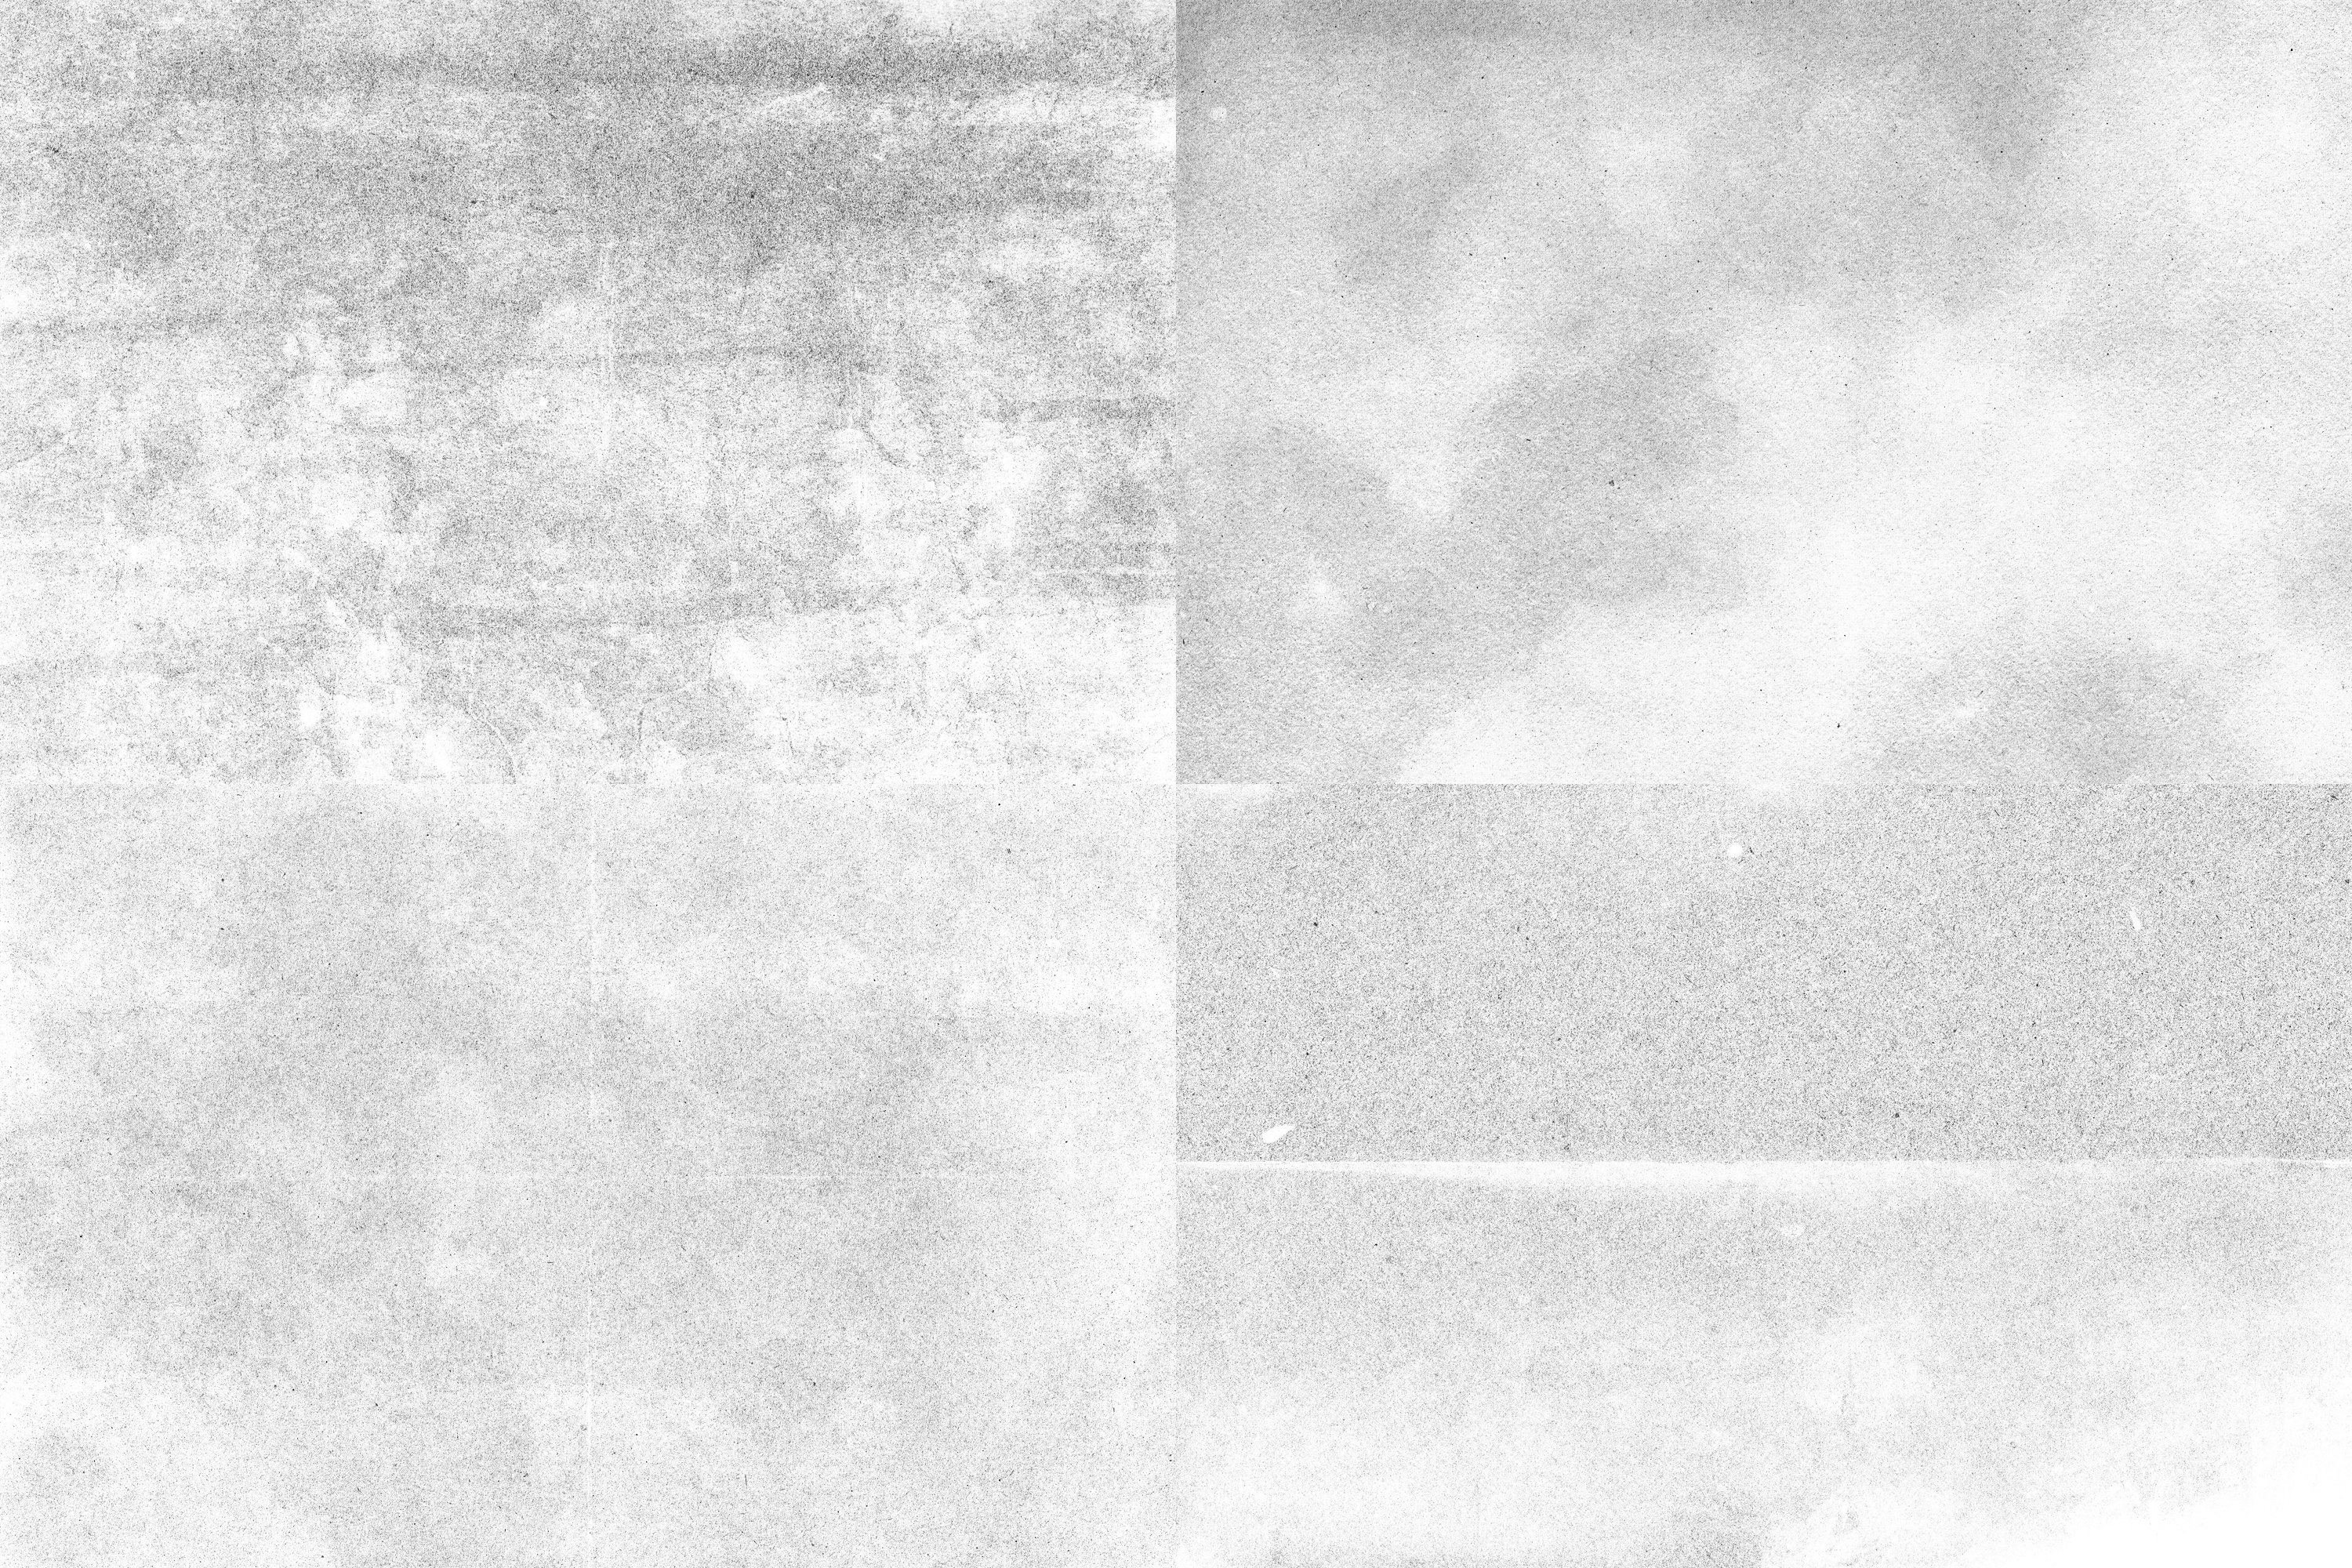 Subtle Grunge Textures Pack example image 2